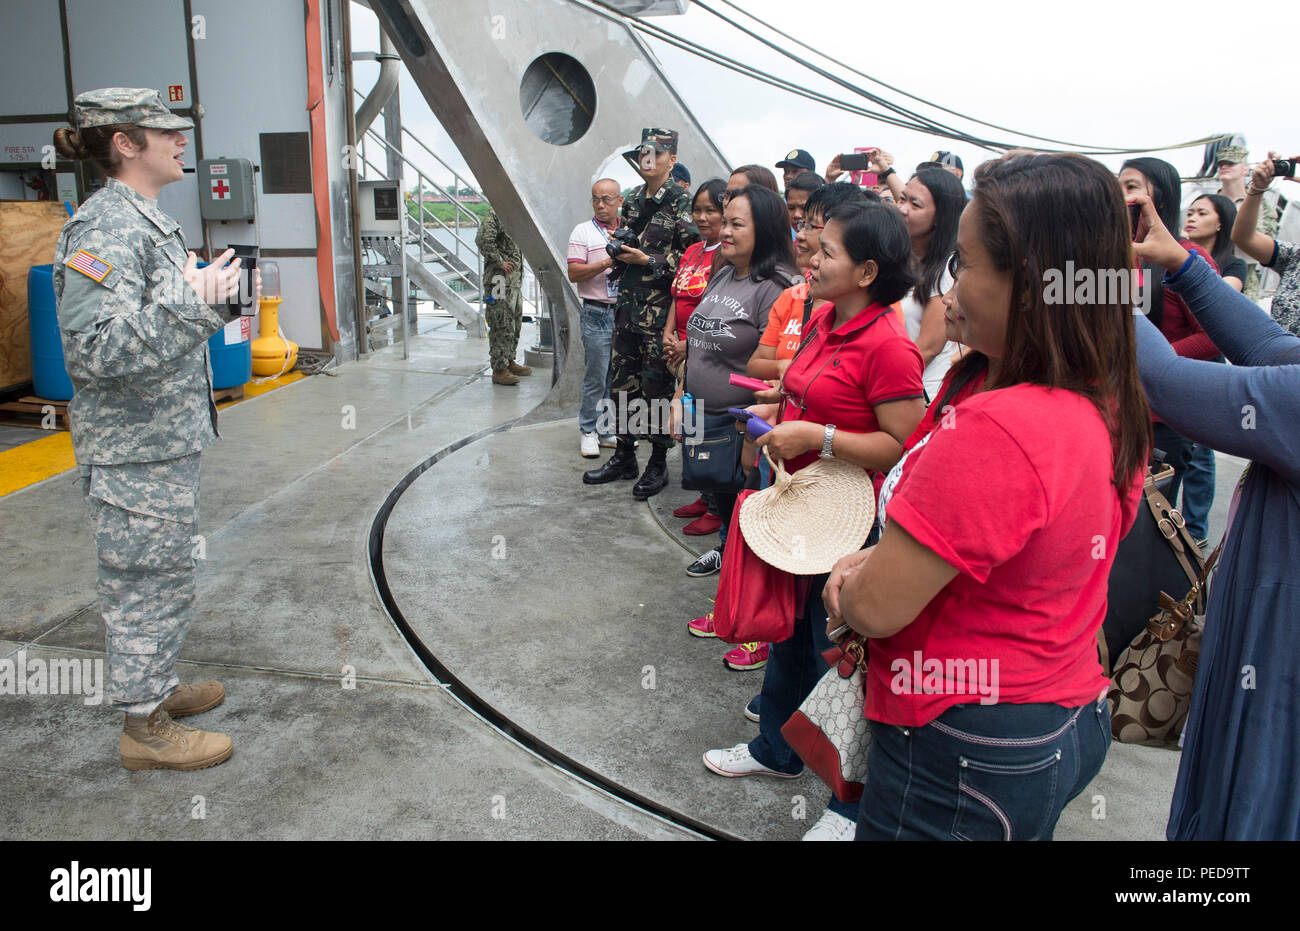 150808-N-MK341-011 SAN FERNANDO CITY, Philippines (August 8, 2015) – Army Capt. Desiree Giangregorio talks to guests during a ship tour of the Military Sealift Command joint high speed vessel USNS Millinocket (JHSV 3) Aug. 8. Millinocket is in the Philippines for the fourth stop of Pacific Partnership 2015. Millinocket and embarked Task Force Forager are serving as the secondary platform for Pacific Partnership, led by an expeditionary command element from the Navy's 30th Naval Construction Regiment (30 NCR) from Port Hueneme, California. Now in its 10th iteration, Pacific Partnership is the l - Stock Image